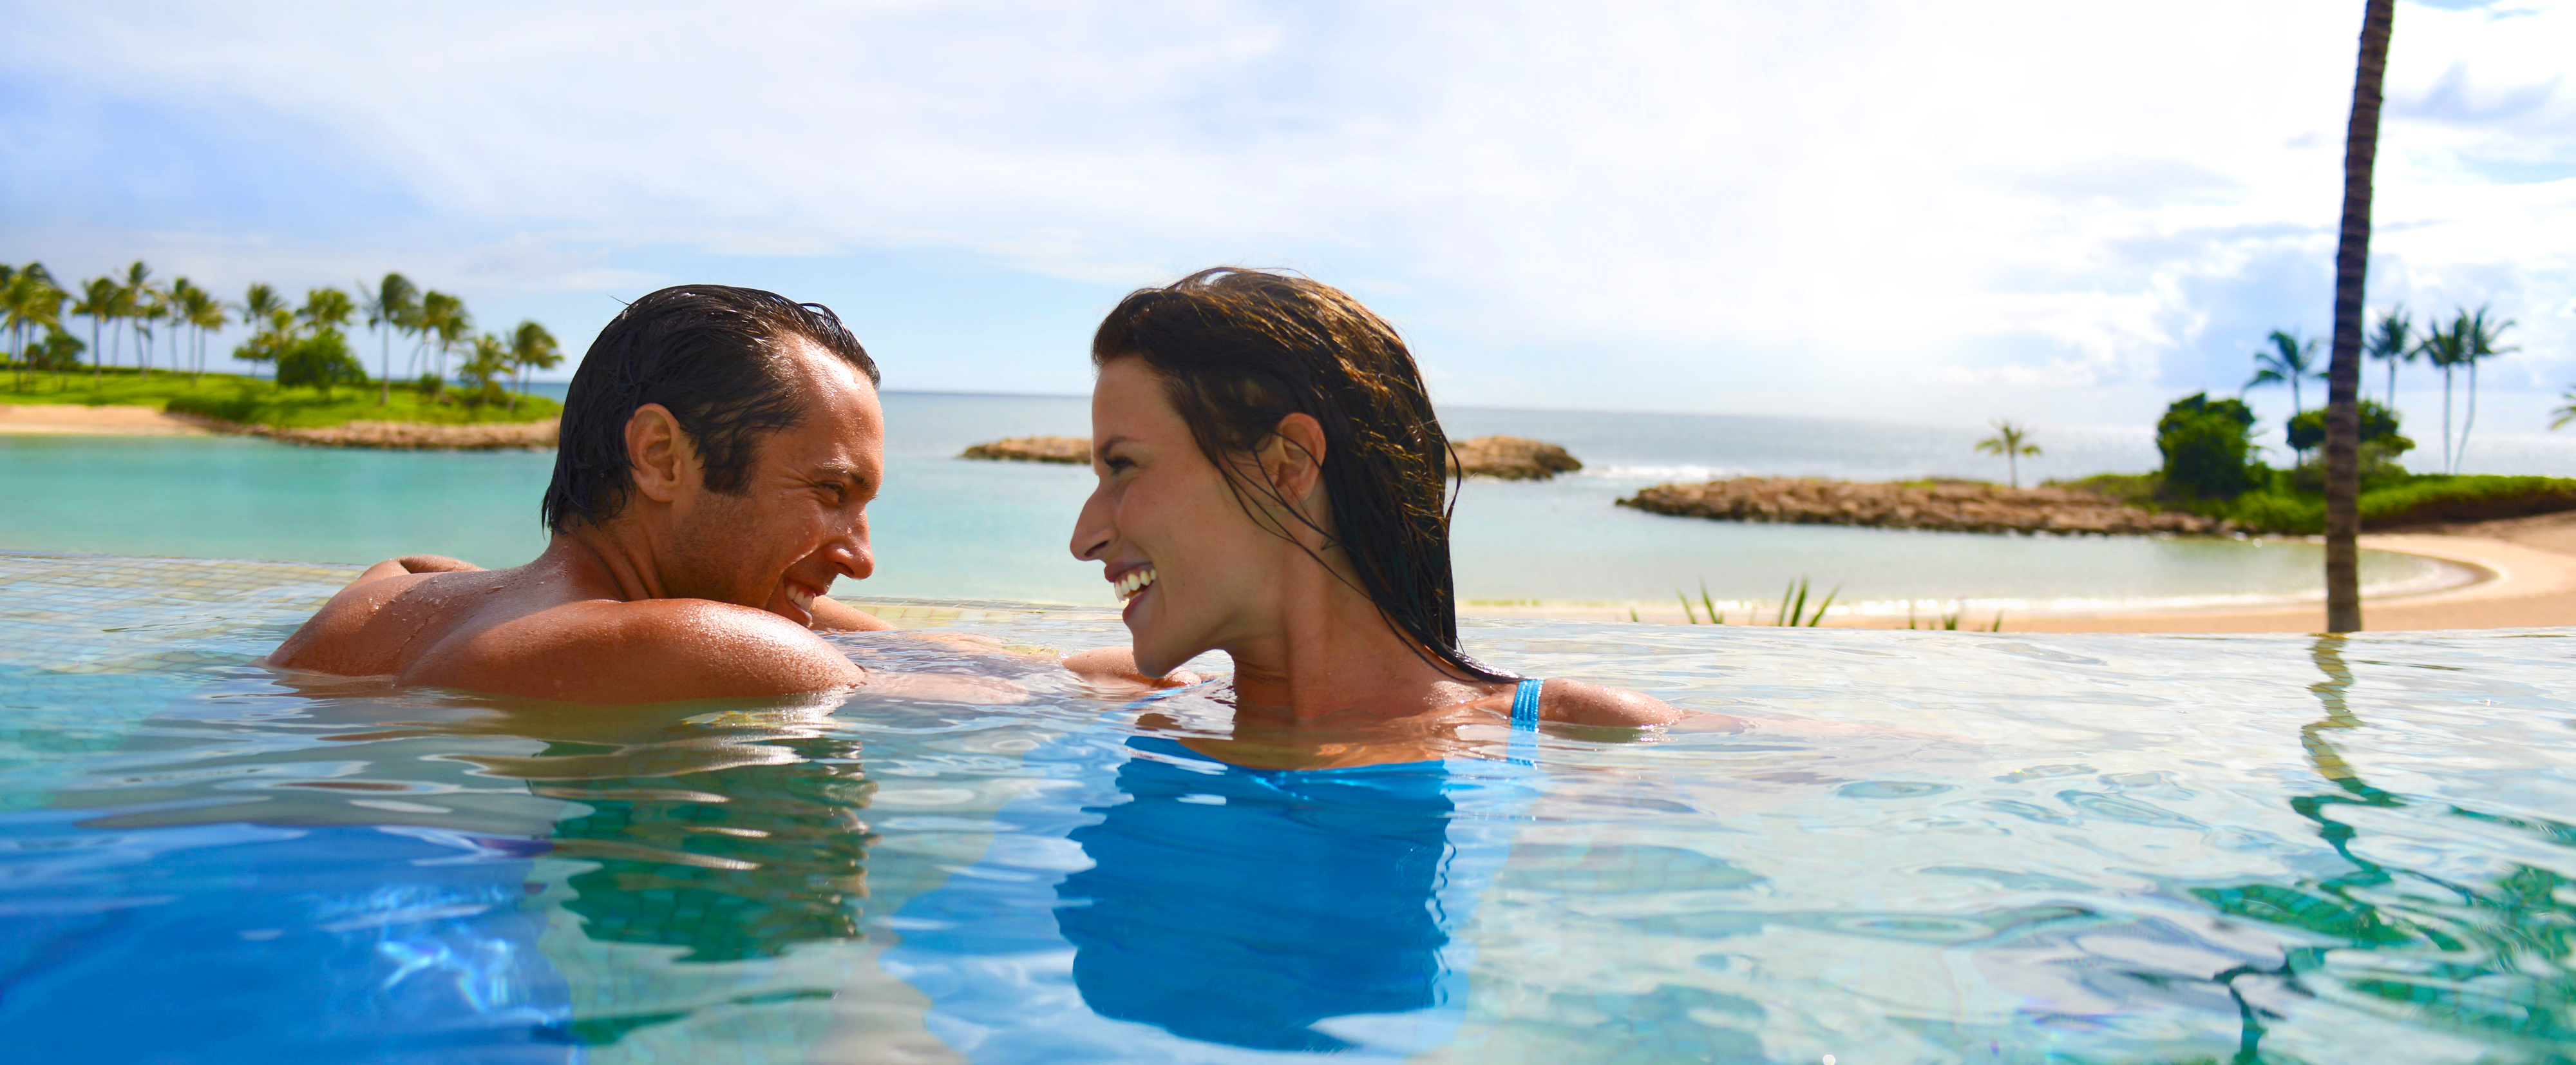 A young couple laughing together while relaxing in the water of the Ka Maka Grotto oceanfront pool